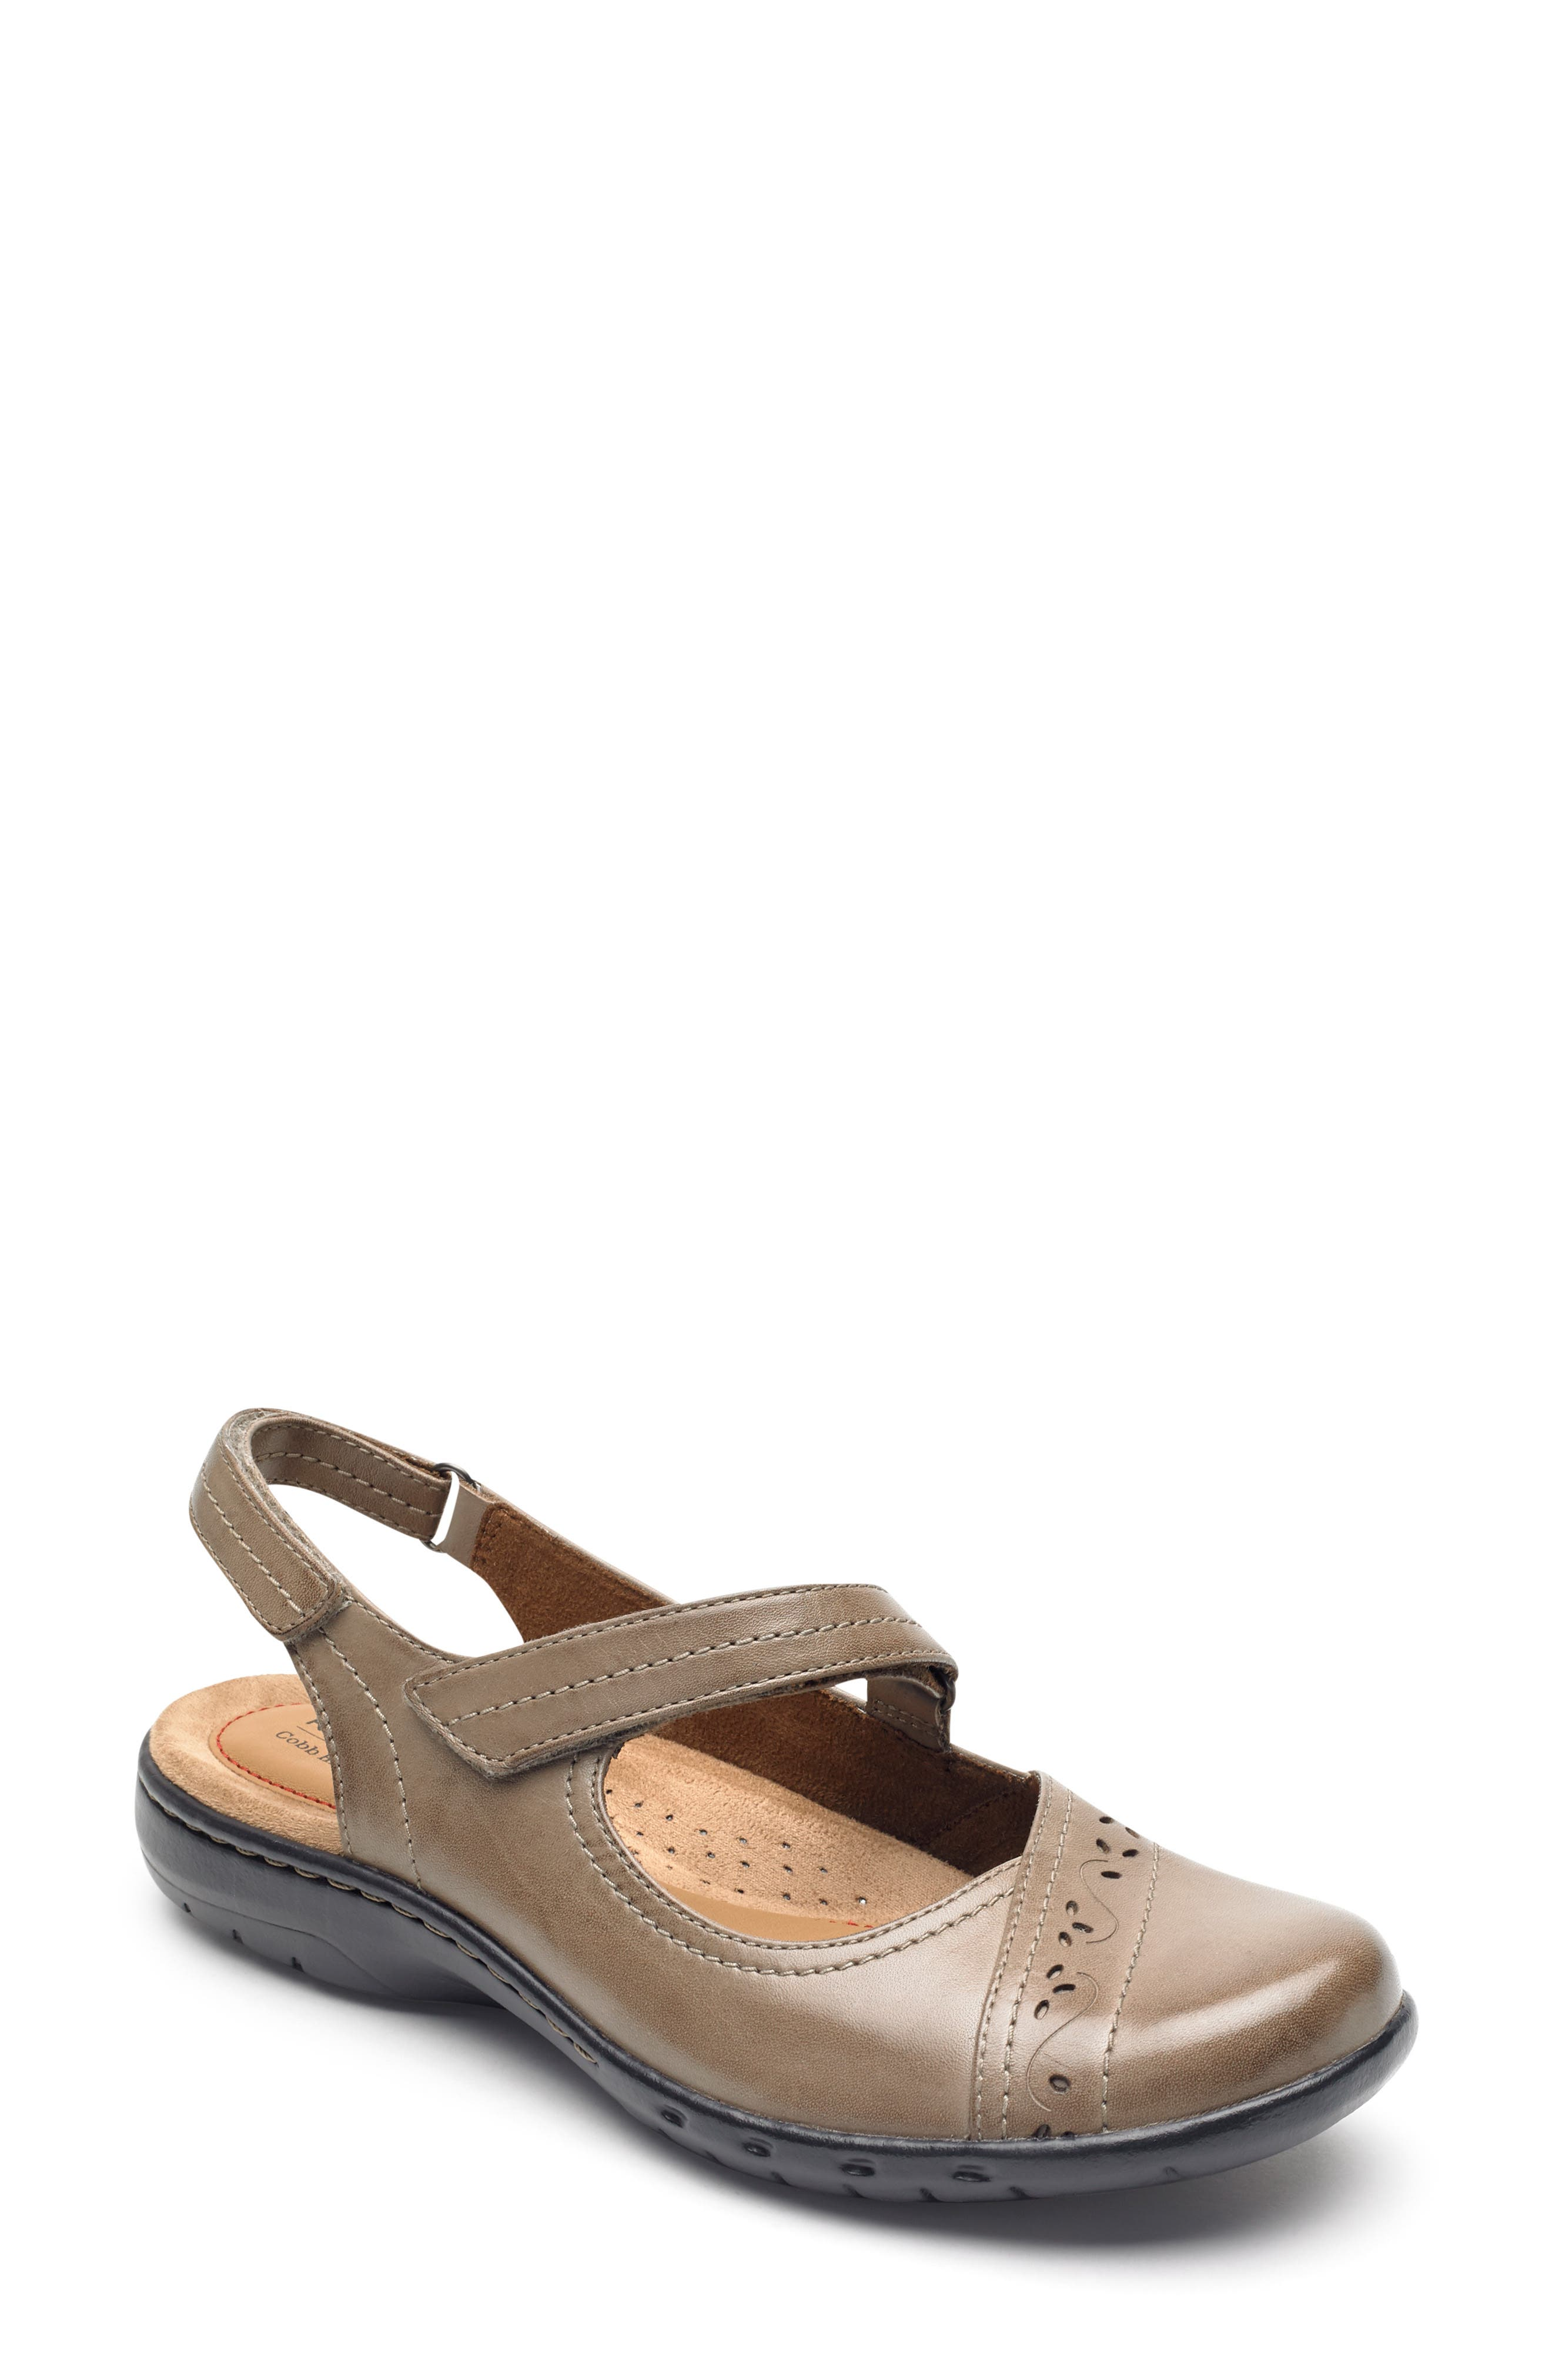 Rockport Cobb Hill Penfield Slingback Mary Jane, Brown